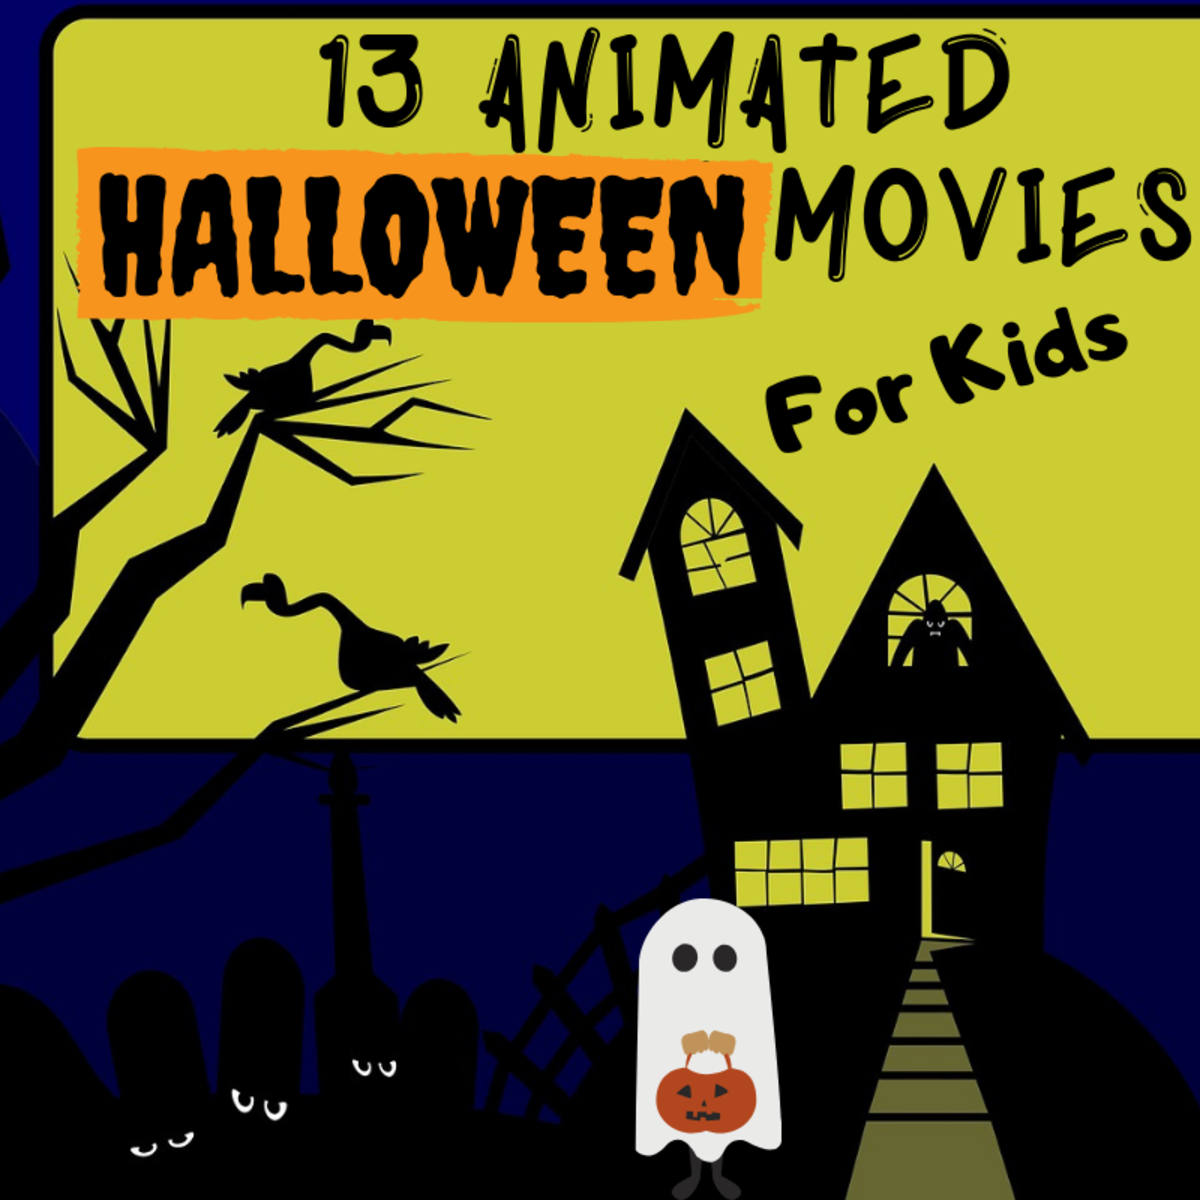 13 Best Animated Halloween Movies for Kids